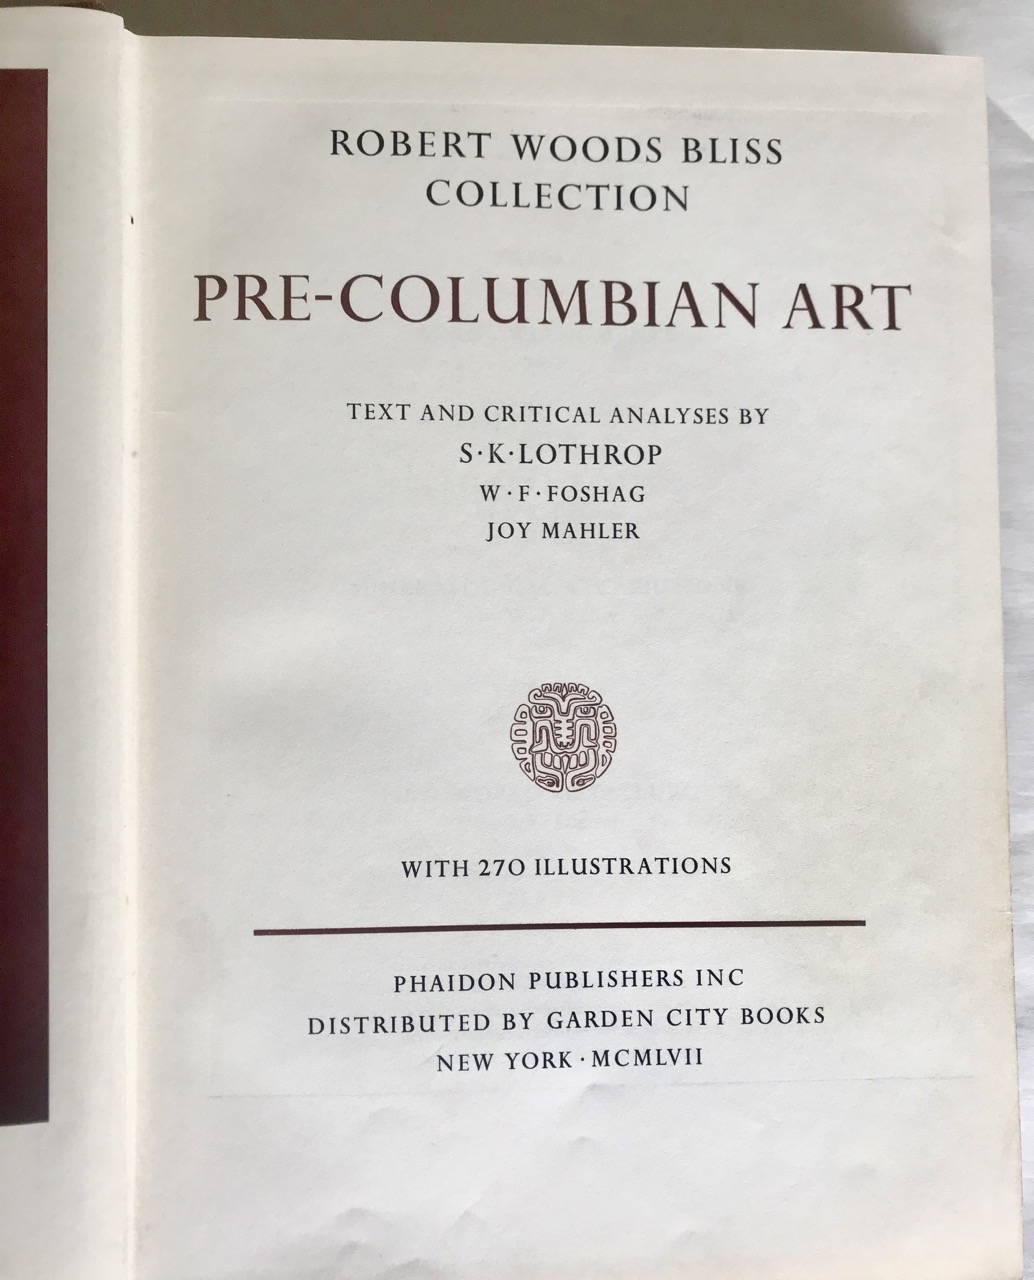 Image for Robert Woods Bliss Collection Pre-Columbian Art - Signed Presentation Copy No. 1